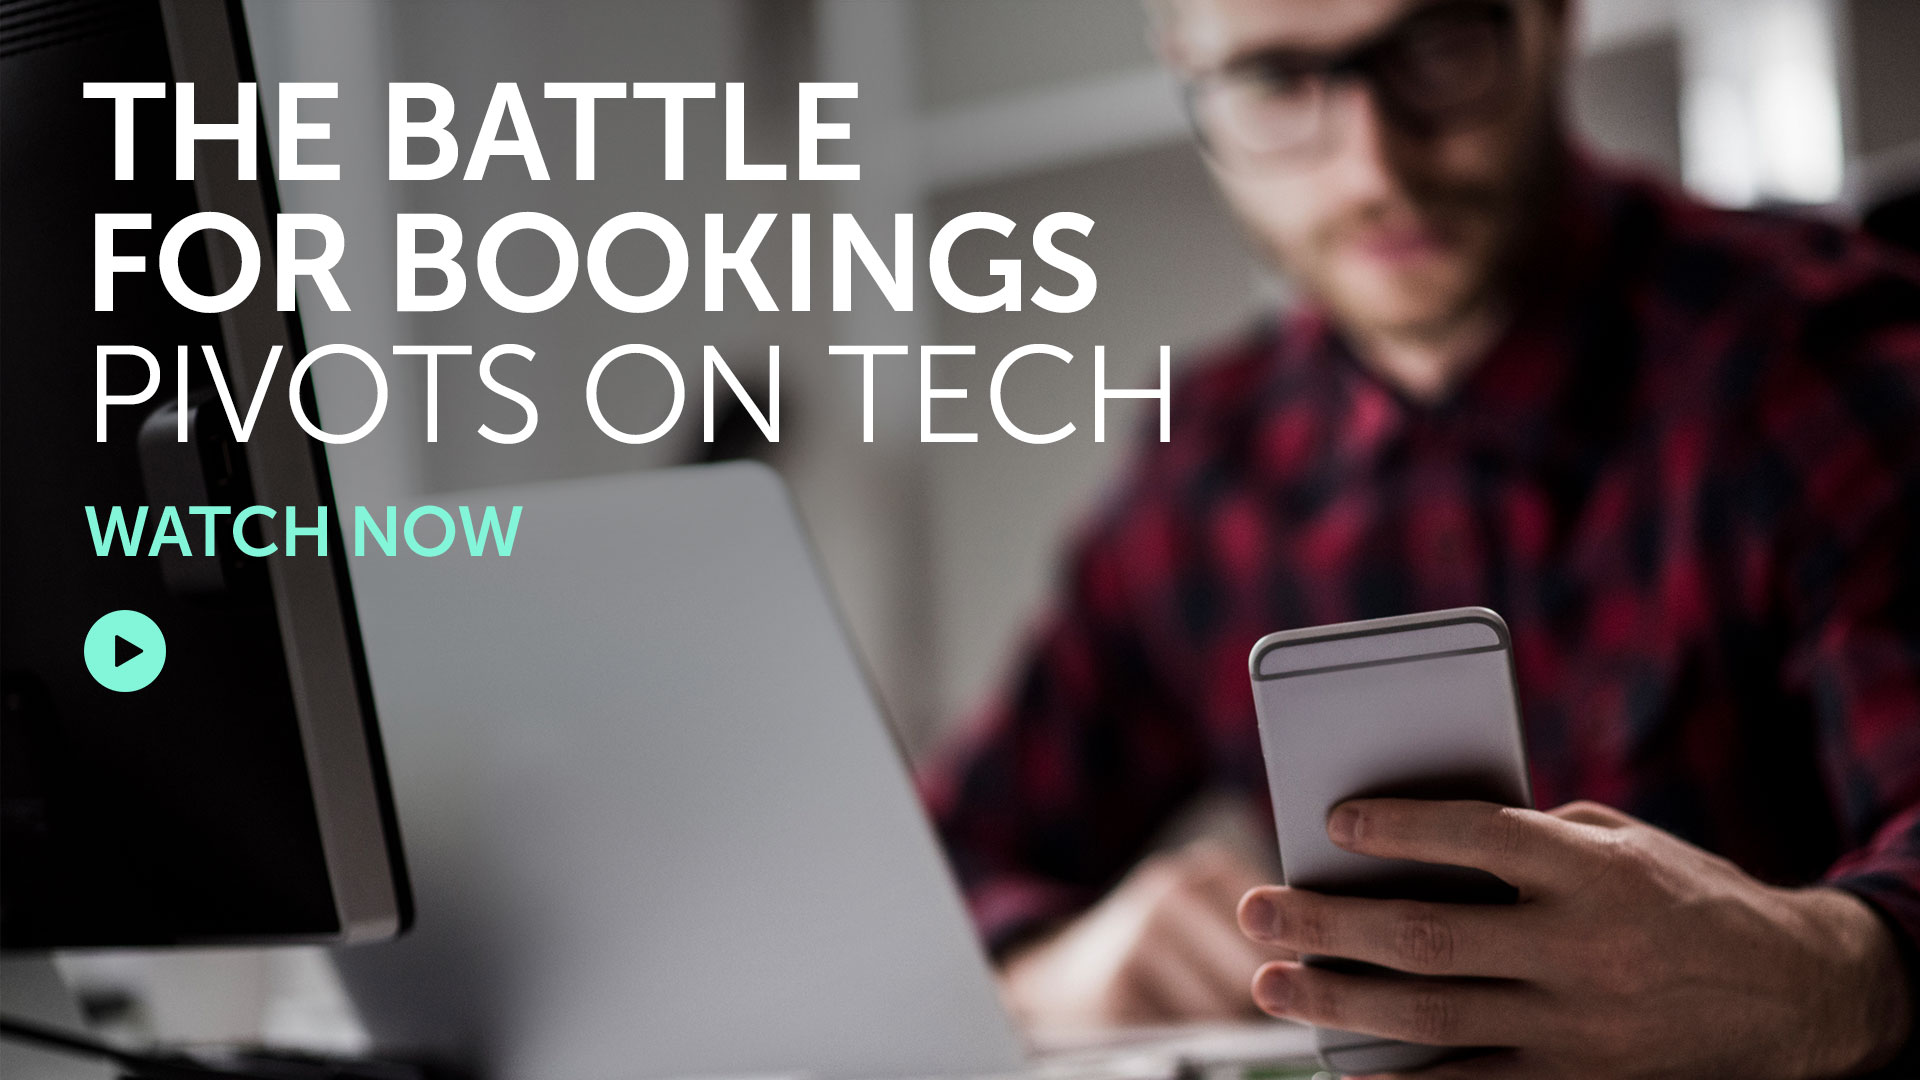 Briefing: The battle for bookings pivots on tech